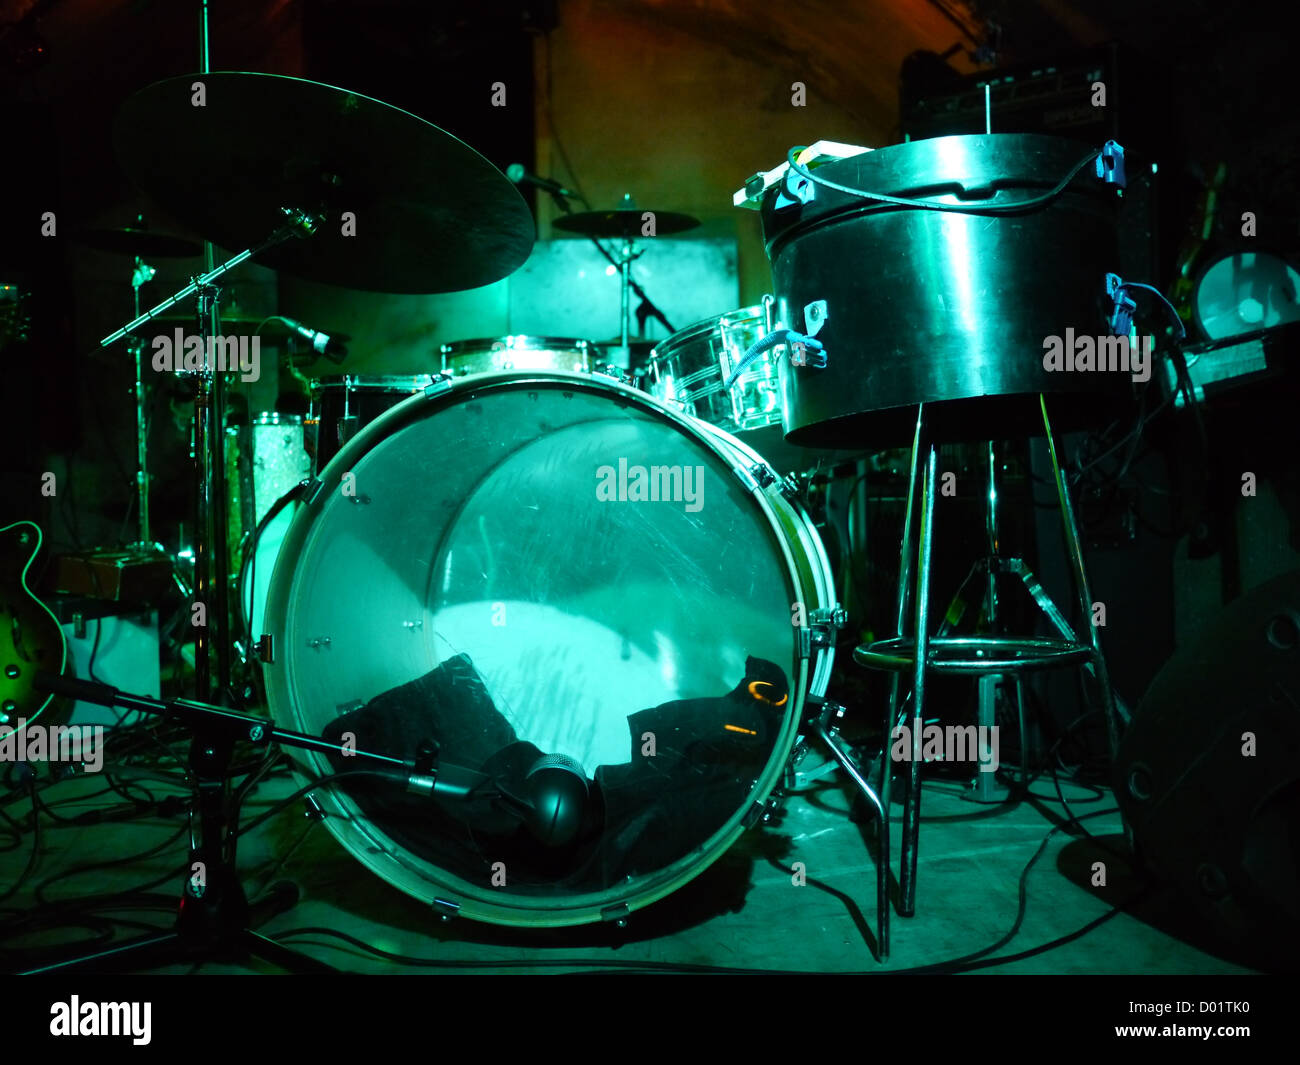 A Drum Set On Stage In Show Lighting Stock Photo 51672404 Alamy